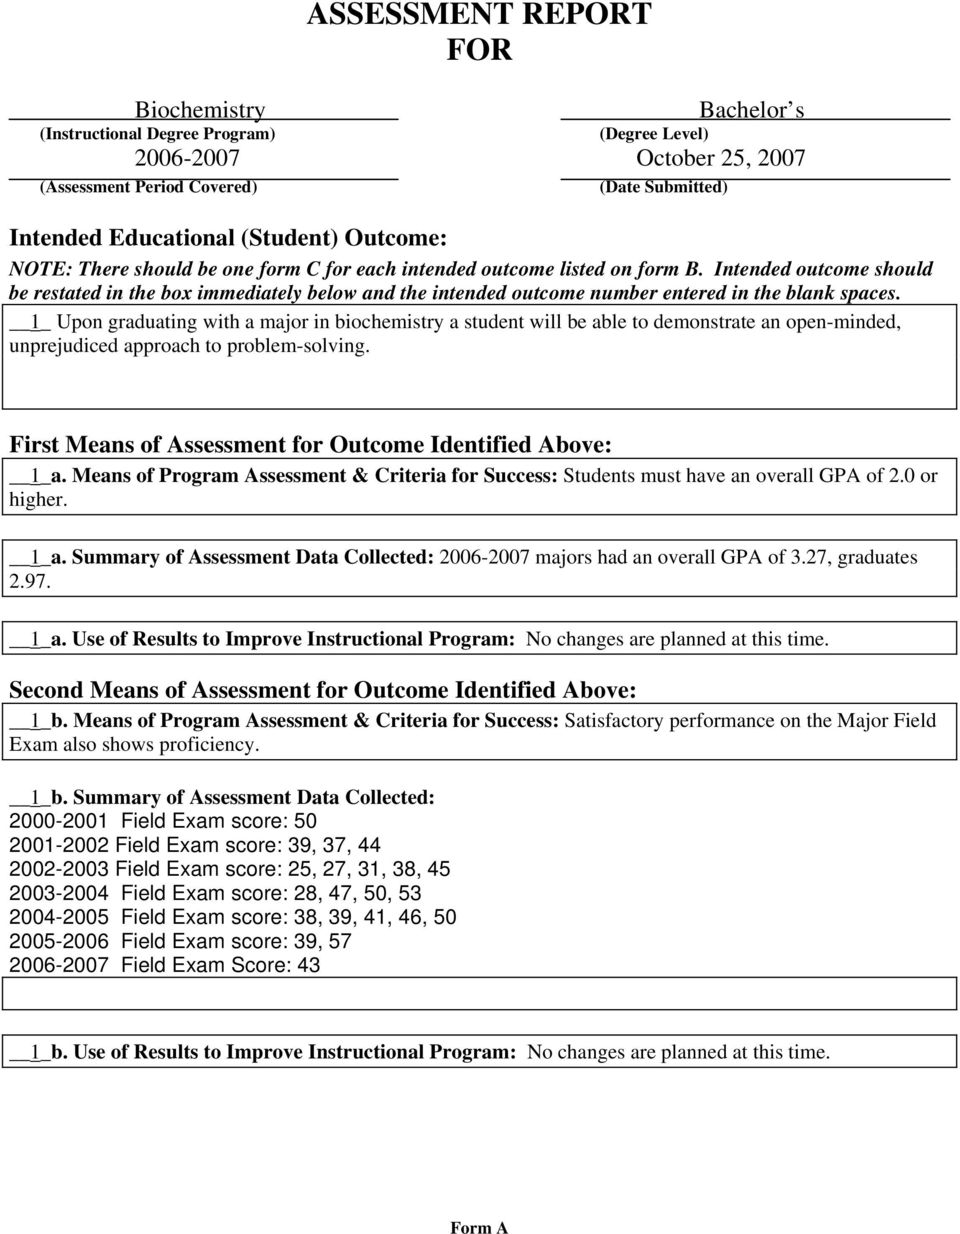 ASSESSMENT RECORD FOR DEPARTMENT OF - PDF